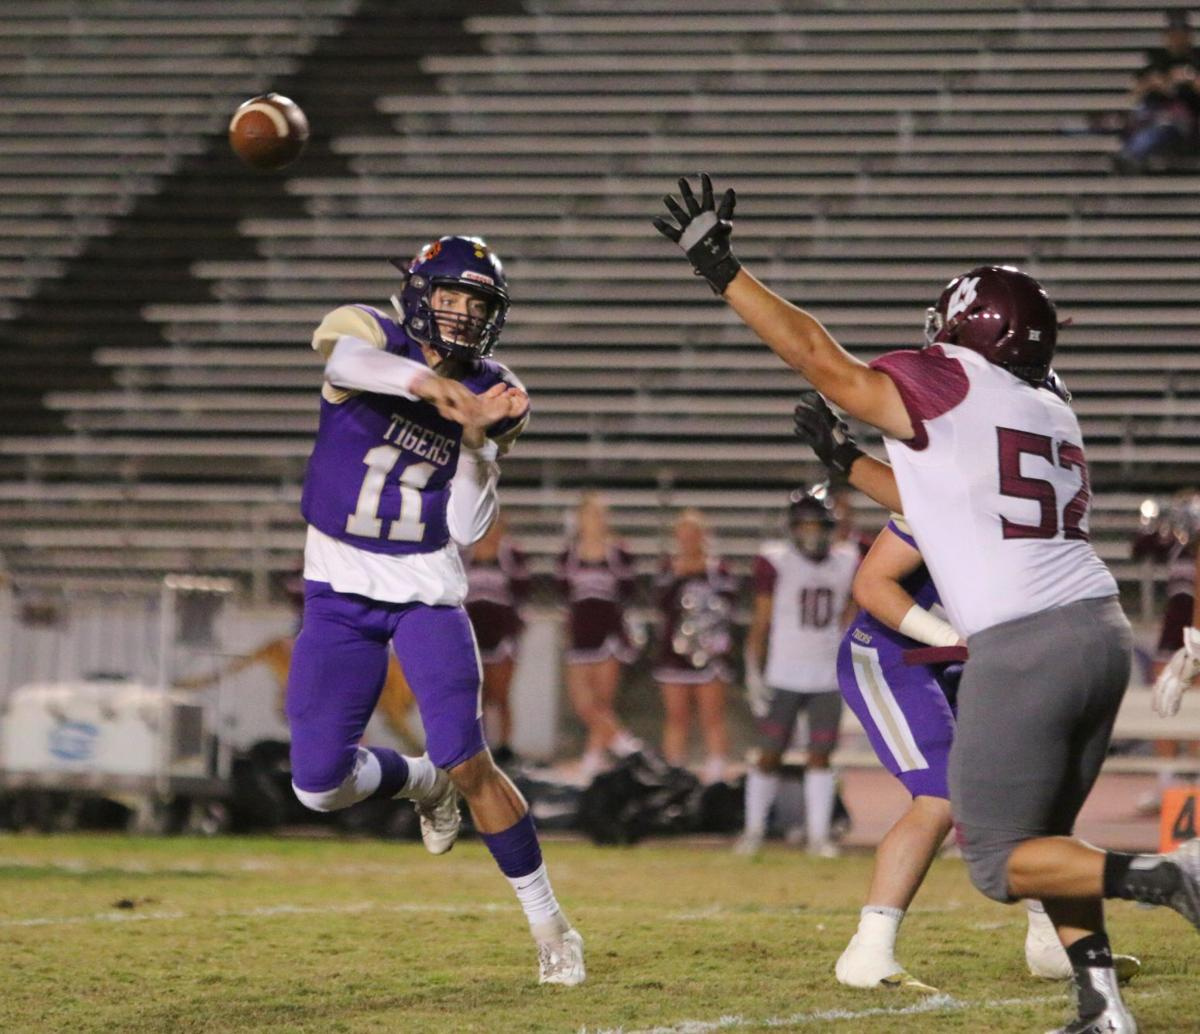 Tigers stay hot with 42-6 rout of Pioneers, clinch playoff spot